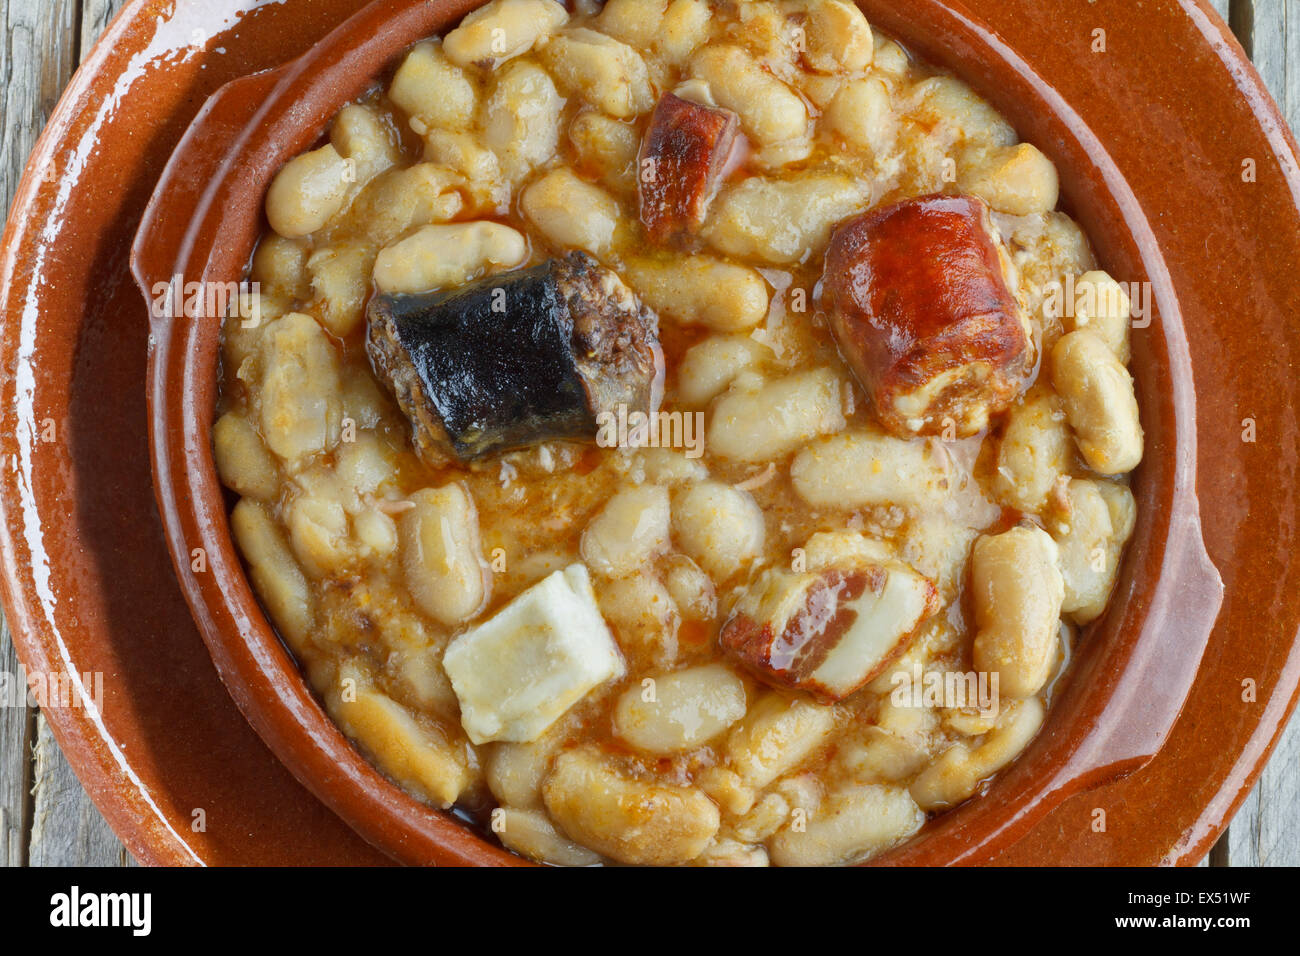 Spanish fabada in an earthenware dish and wooden background Stock Photo